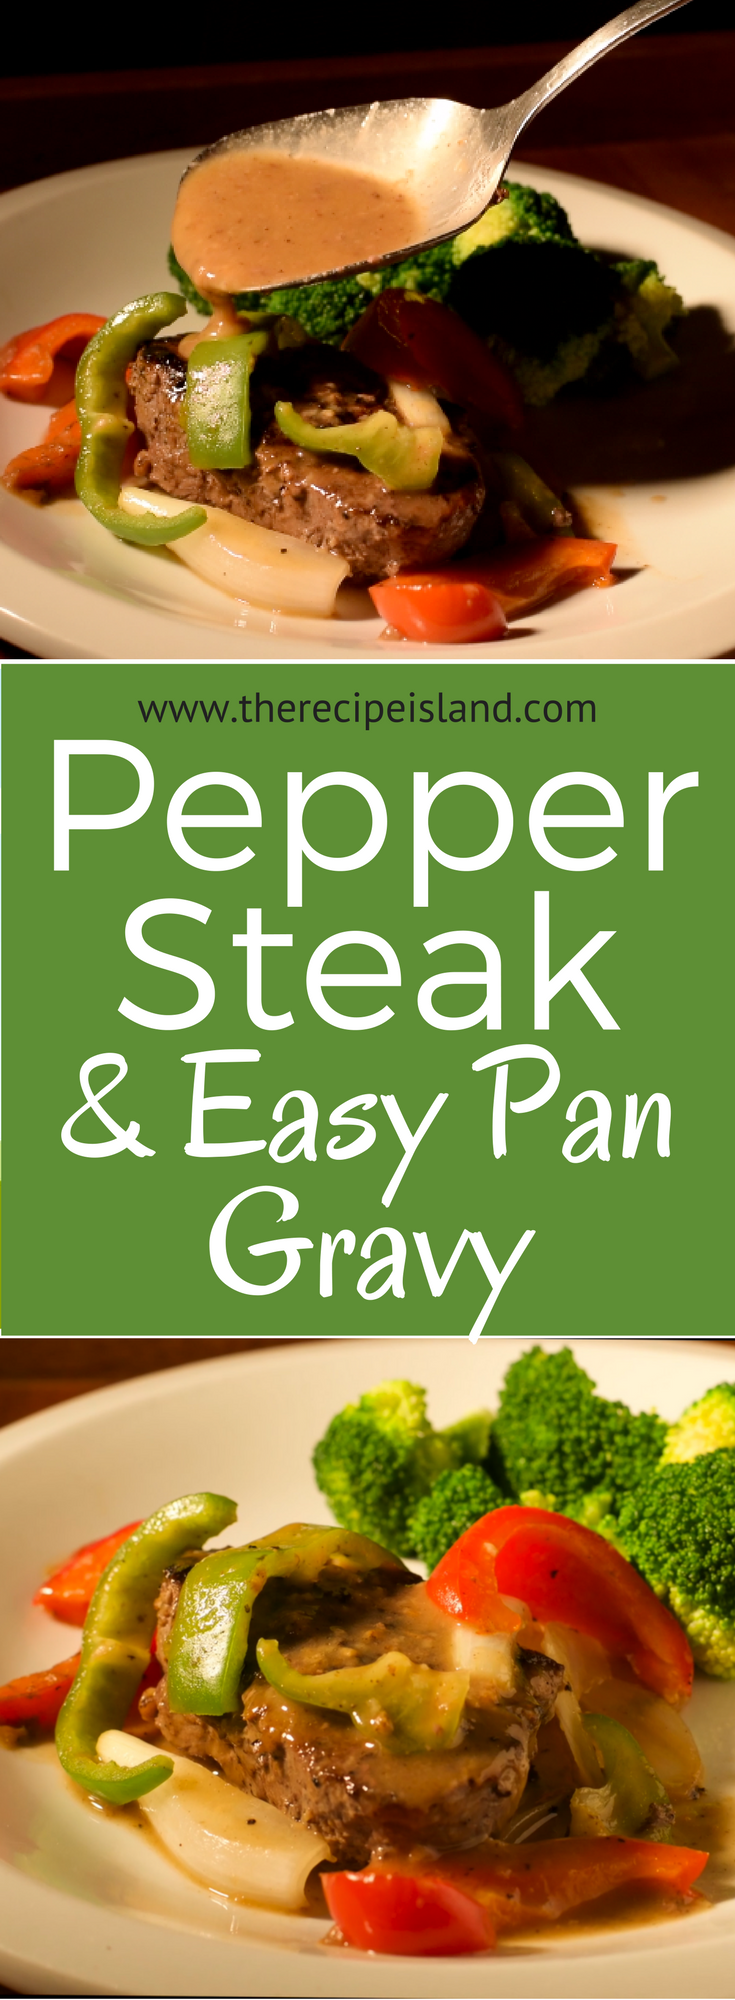 This Pepper Steak with Easy Pan Gravy takes only 30 minutes or less. Give it a try